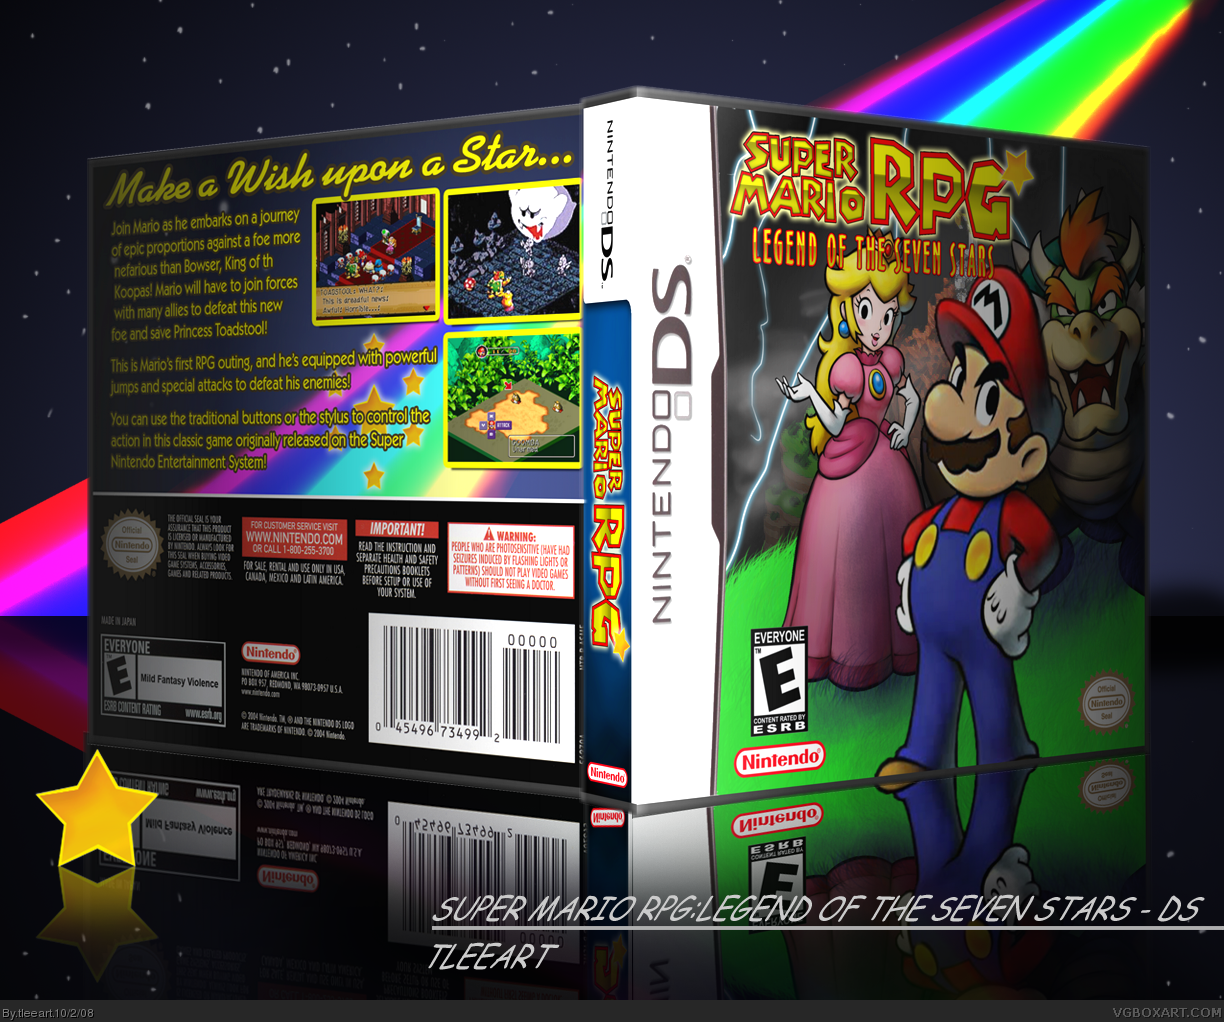 Super Mario RPG DS Nintendo DS Box Art Cover by tleeart